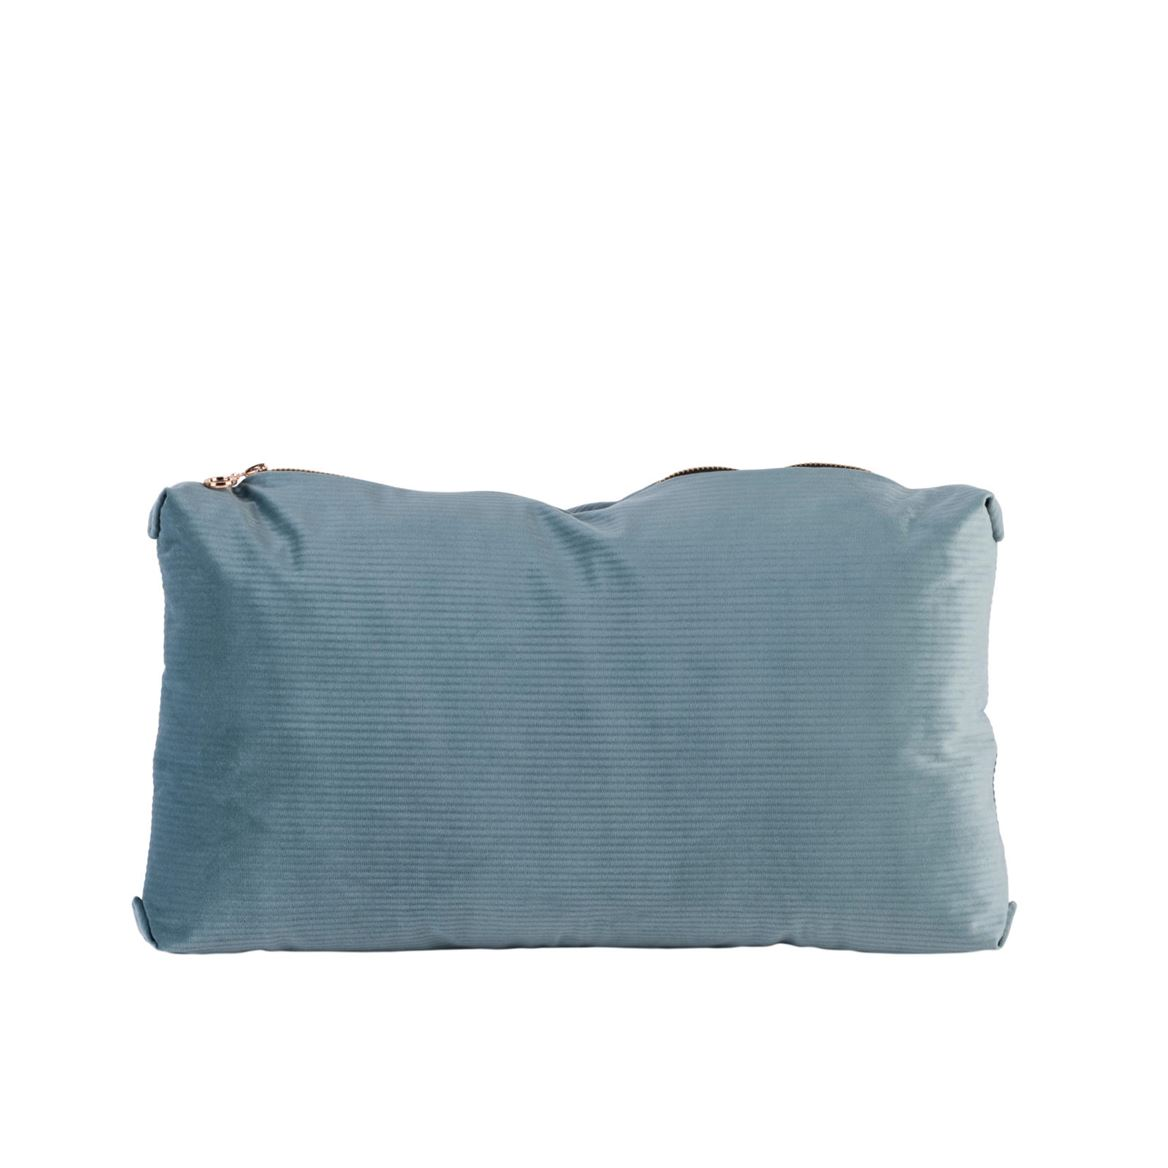 NICO Coussin menthe Larg. 30 x Long. 50 cm_nico-coussin-menthe-larg--30-x-long--50-cm